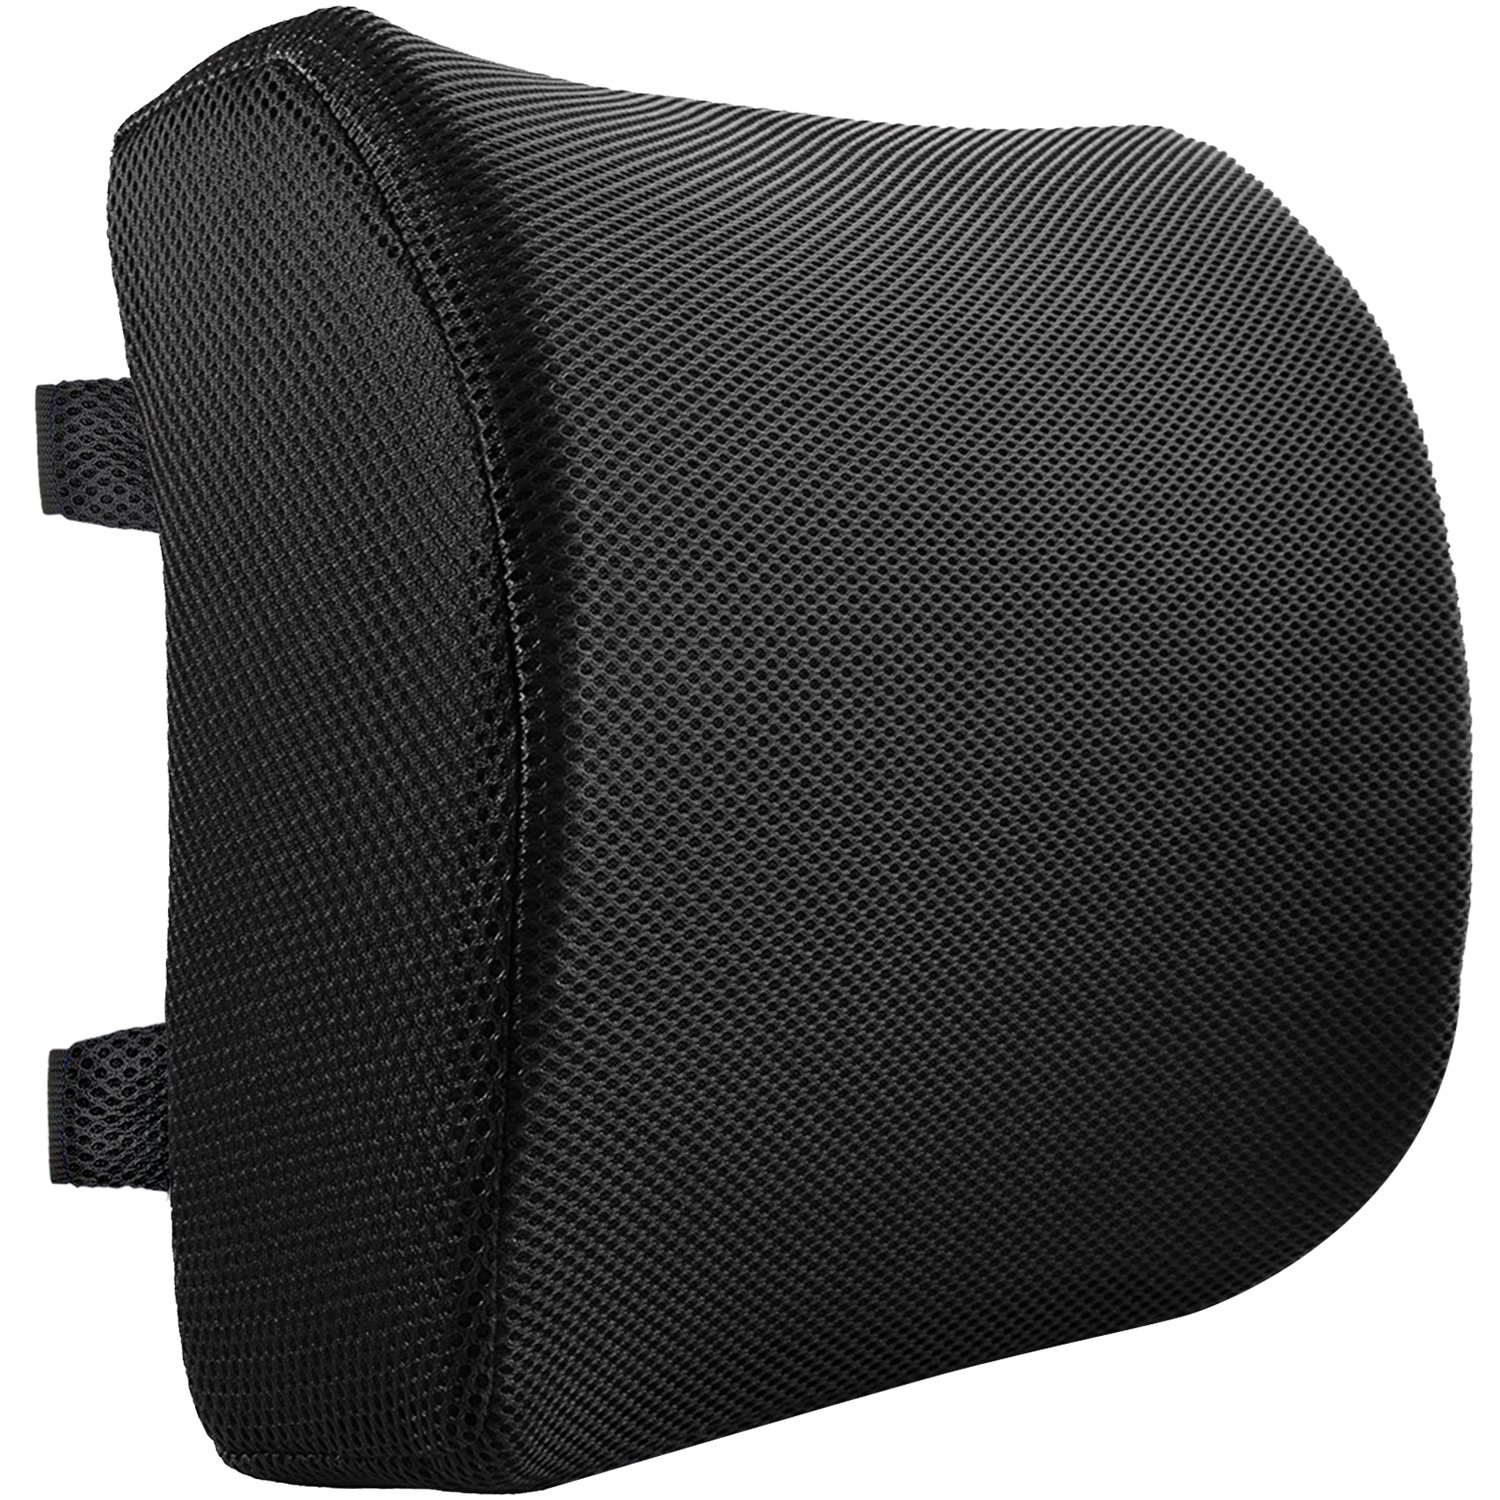 Tadge Goods Lumbar Support Lower Back Cushion Pillow - Great Straps Office Chair Car Sciatic Nerve Pain Relief   Thick, Comfortable 100% Memory Foam   Ergonomic, Orthopedic Design